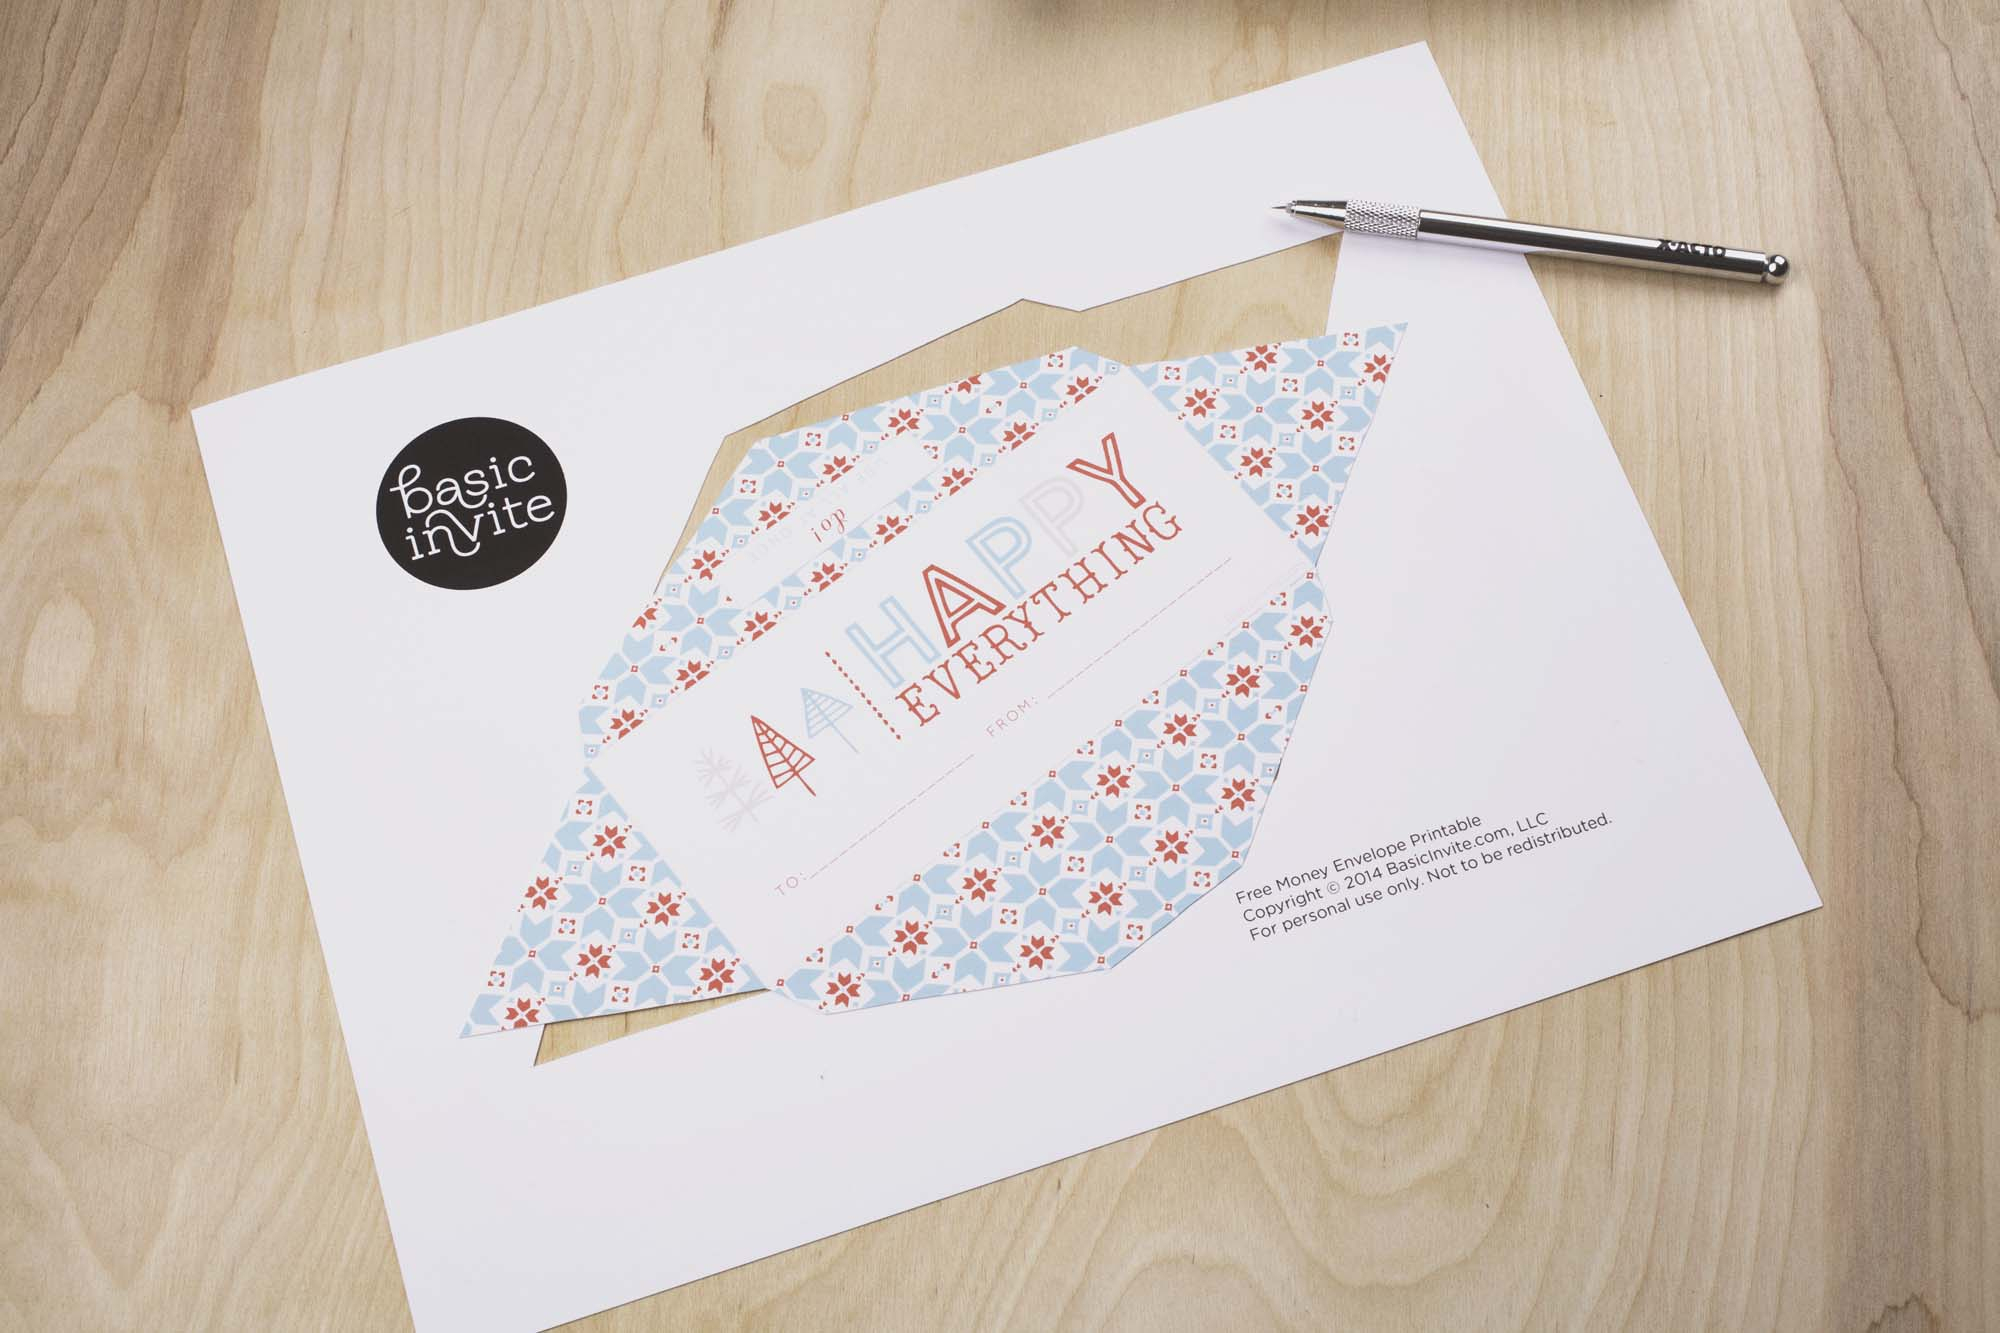 Free Money Envelope Printable Archives - Free Printable Money Envelopes